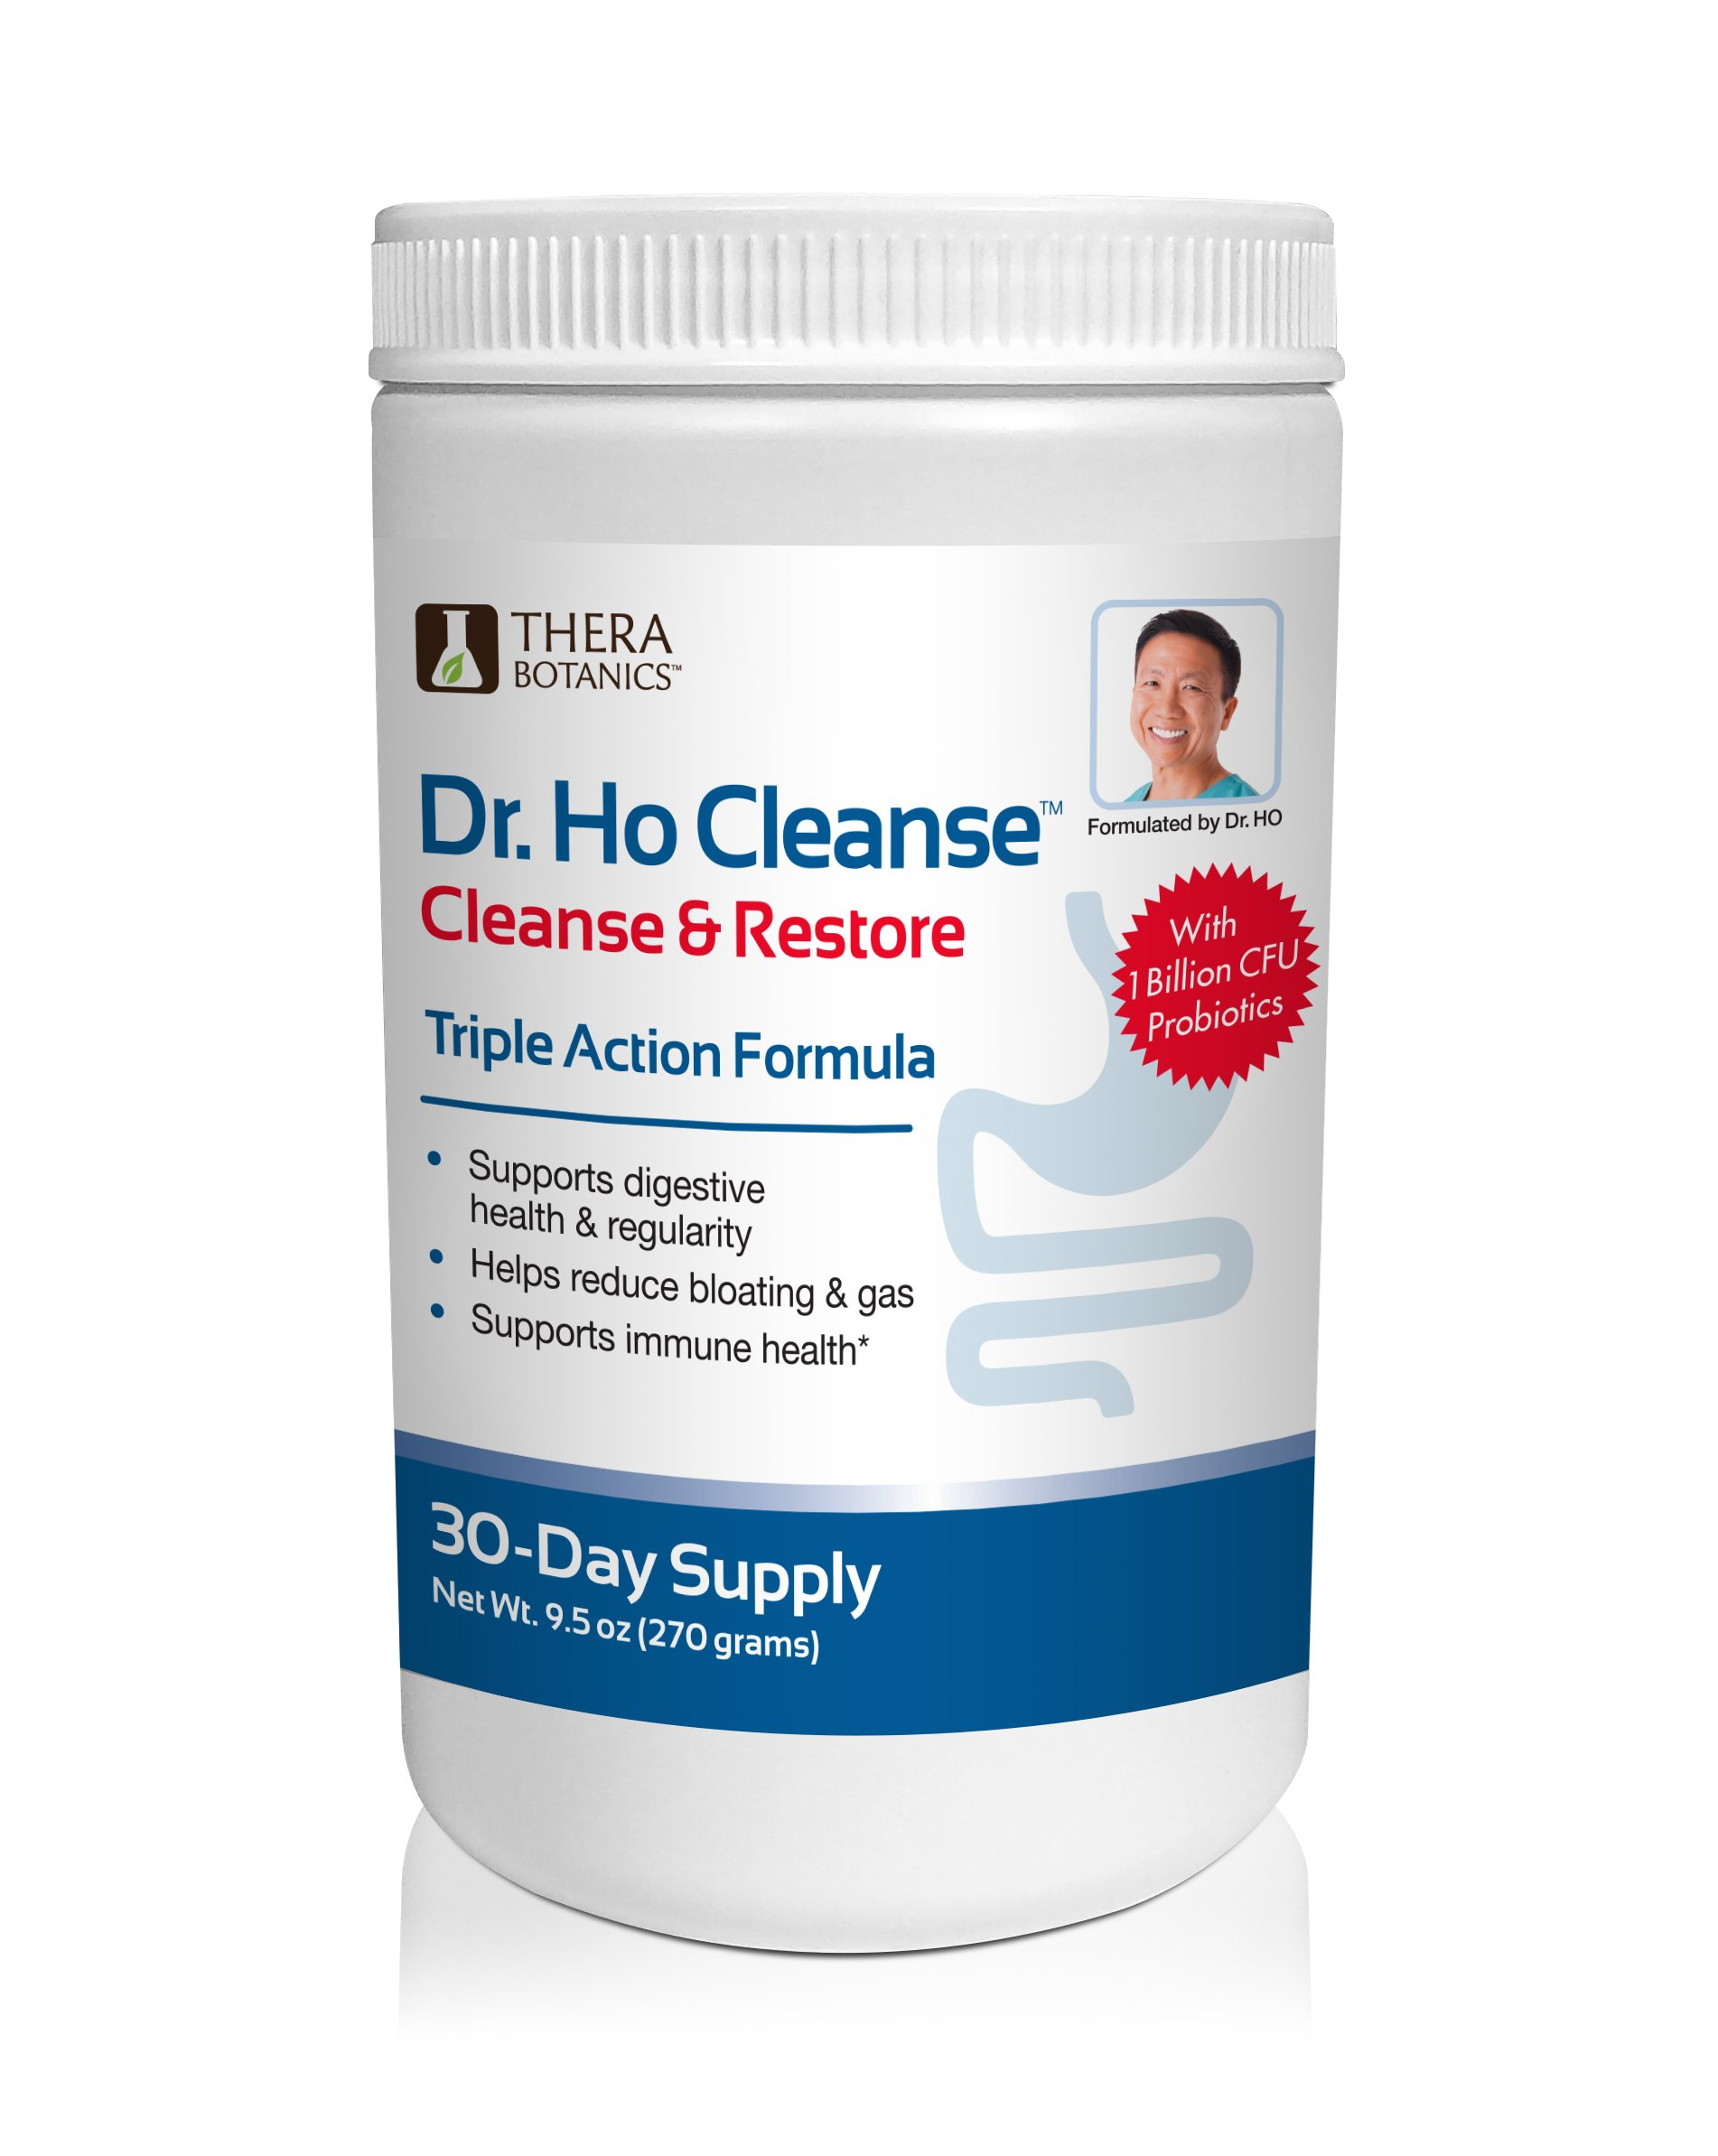 Dr Ho Cleanse